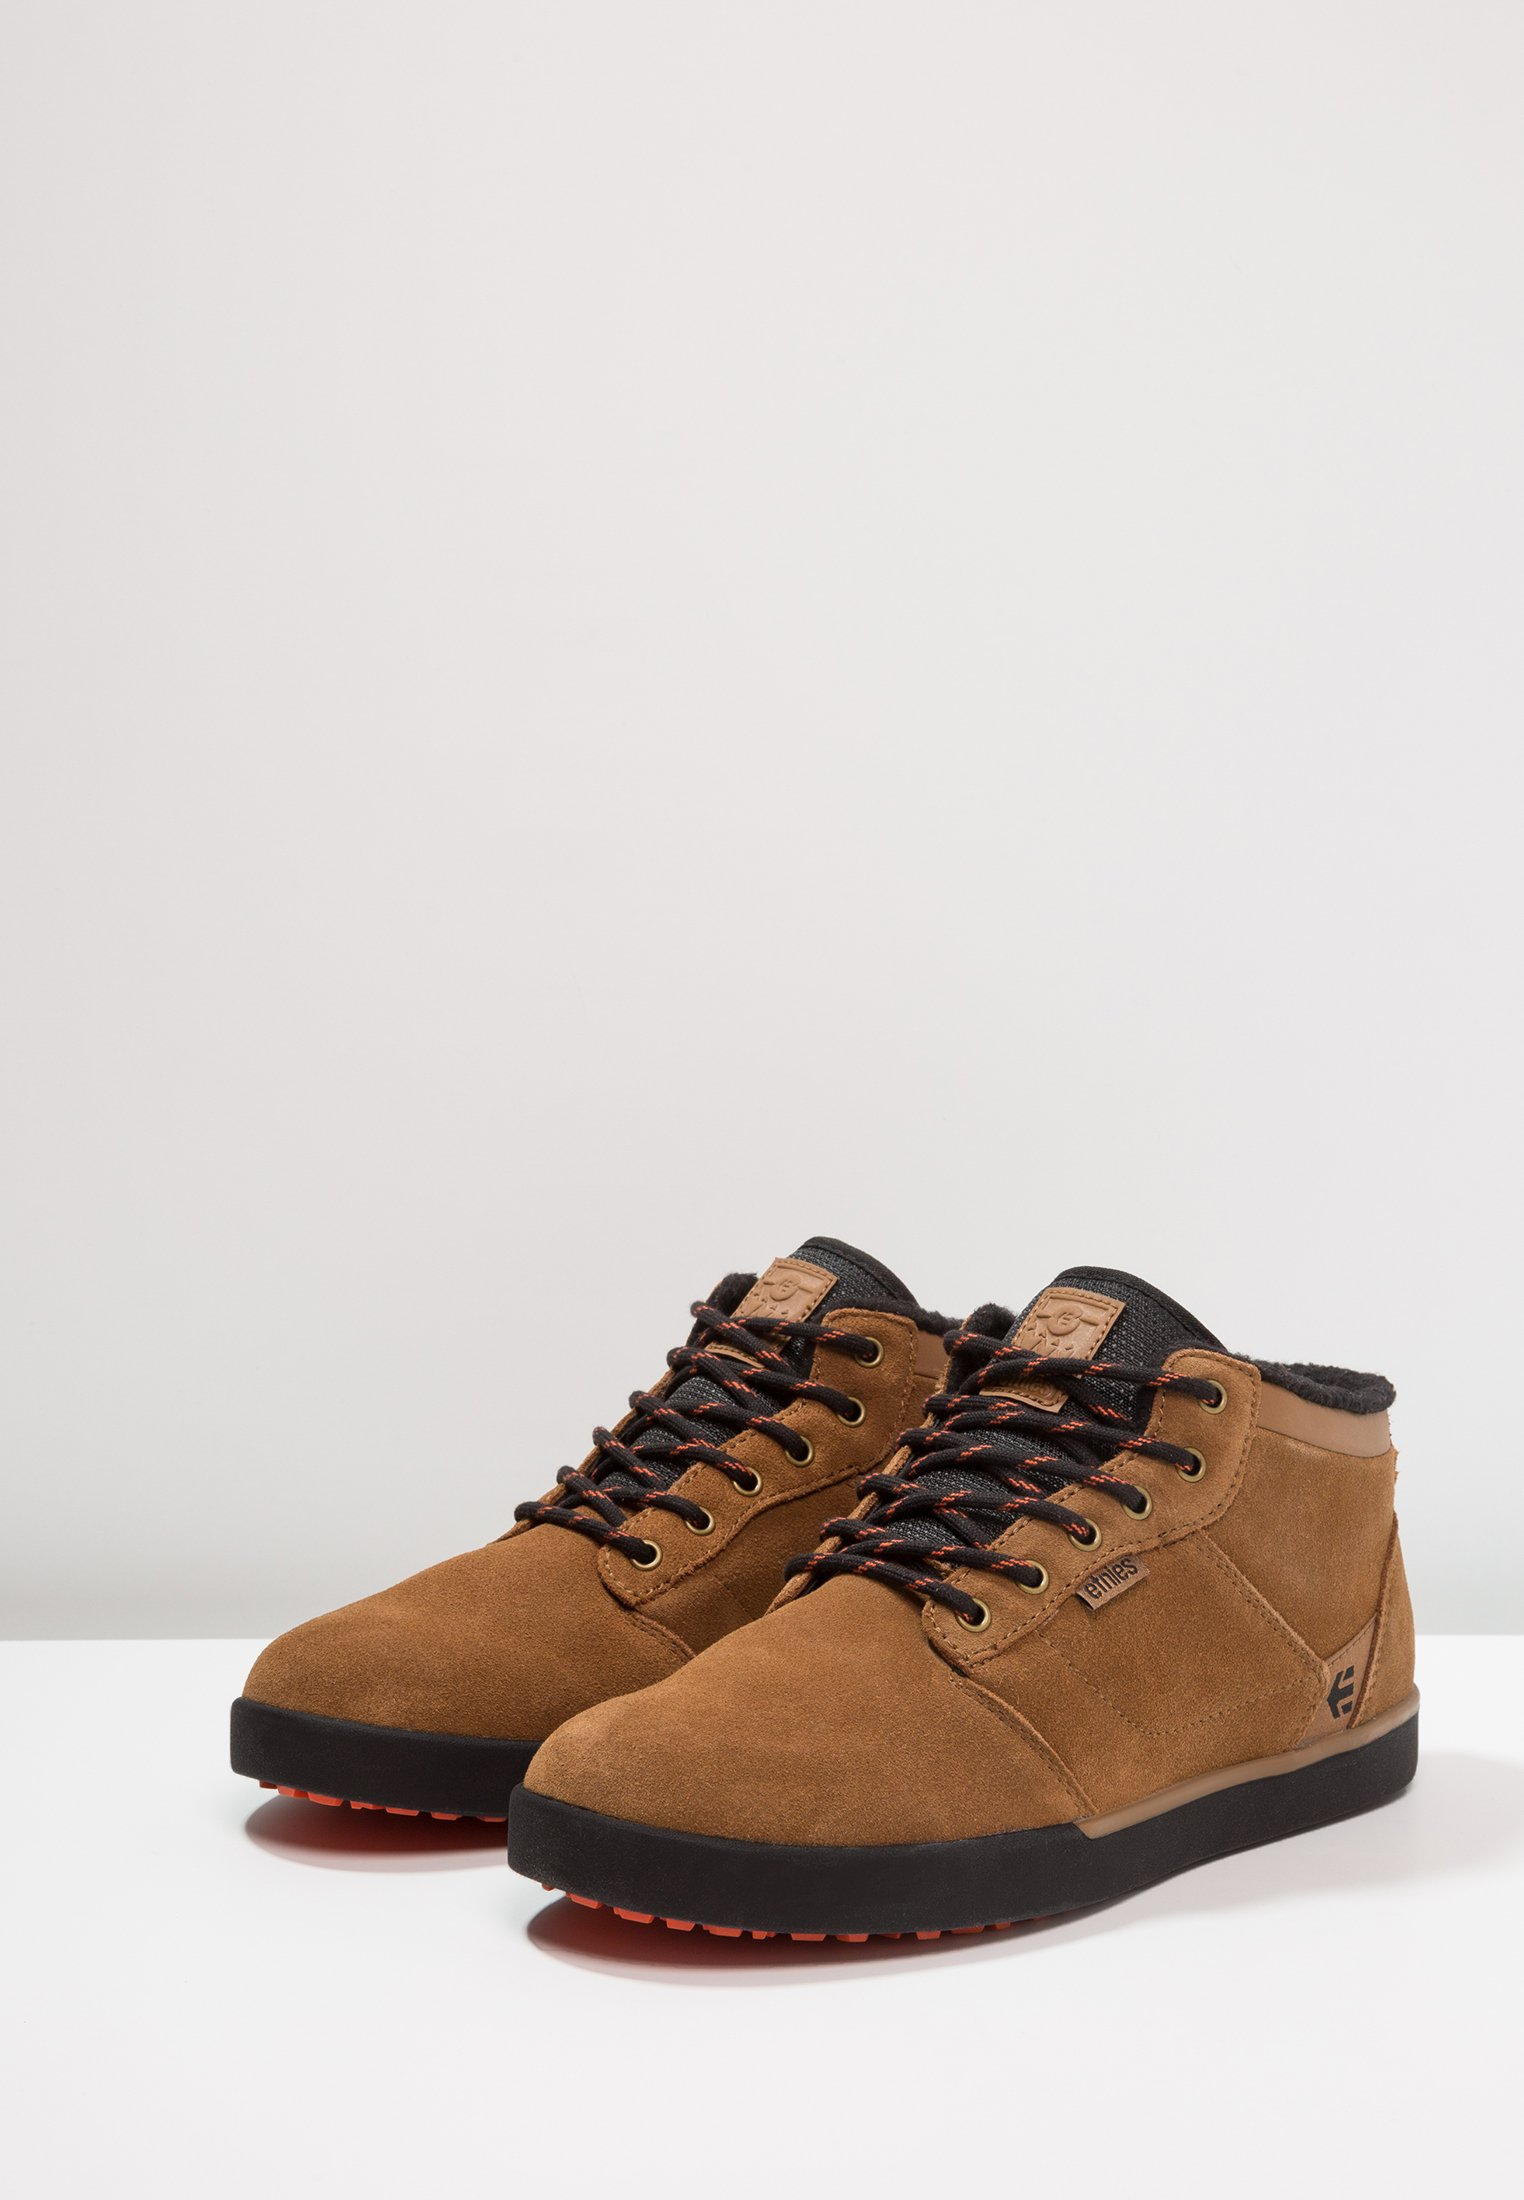 Etnies JEFFERSON MTW - Chaussures de skate brown/black